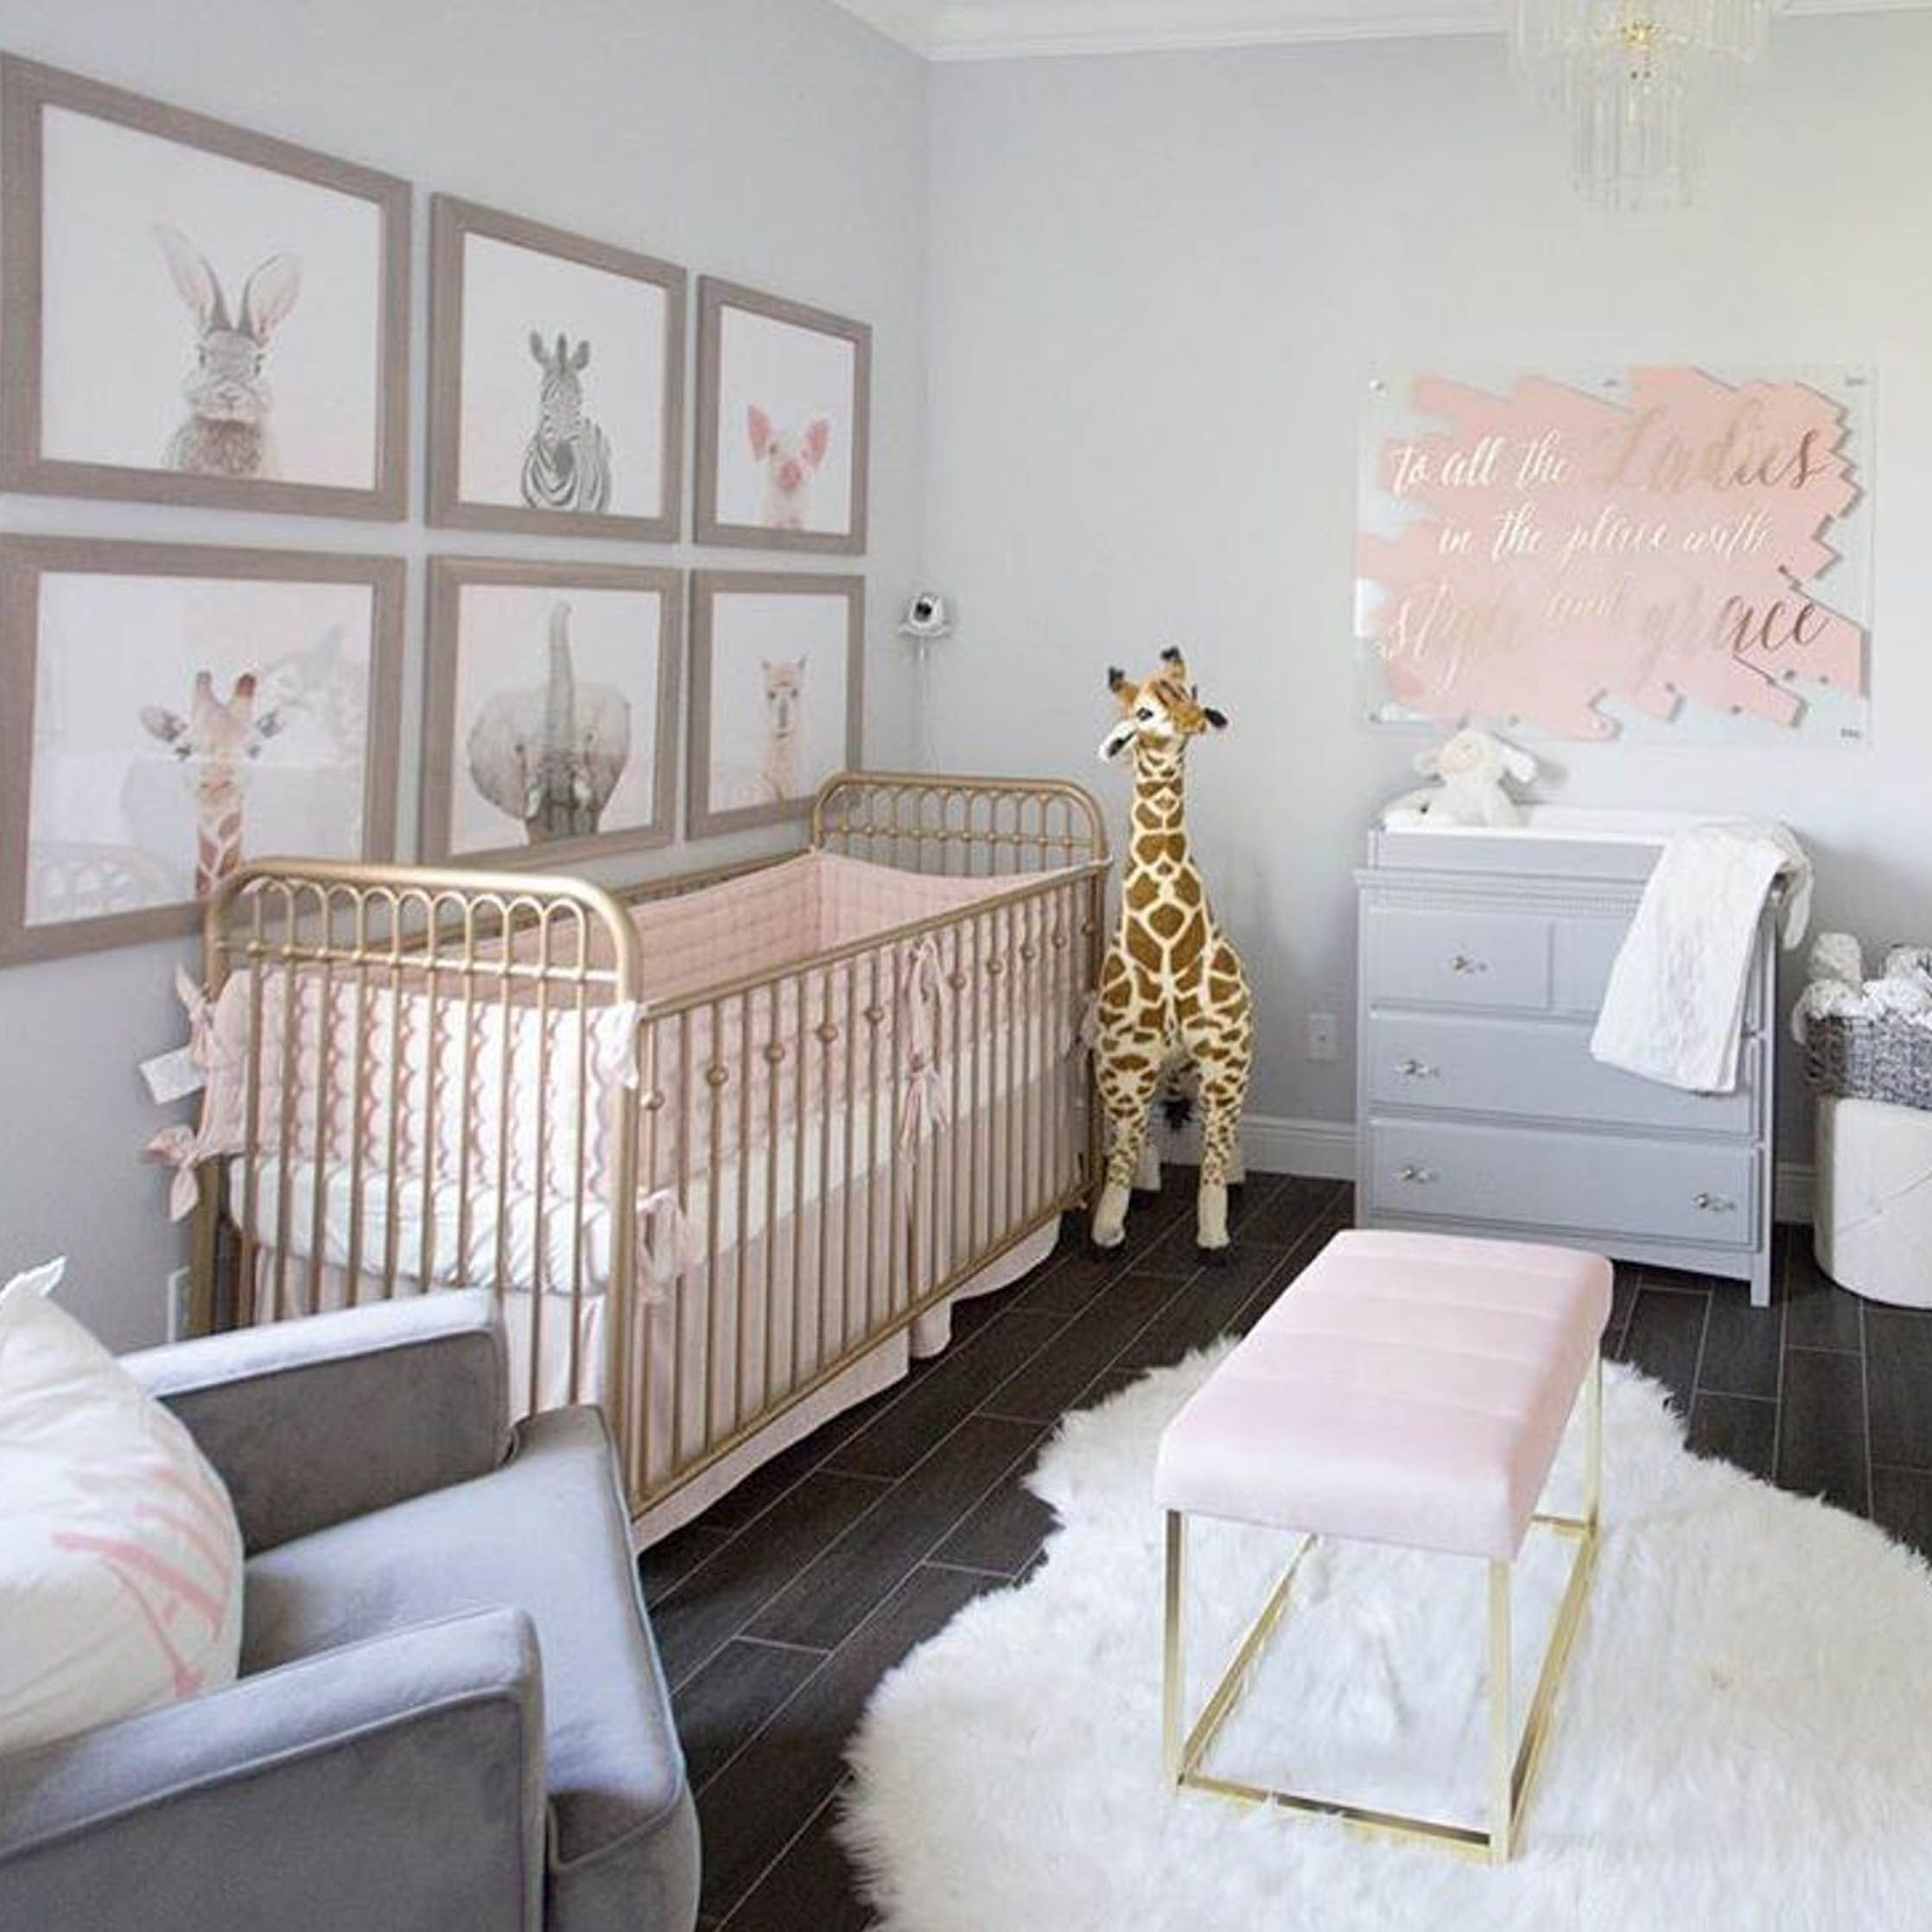 Baby Girl Nursery Decor Pink, gold and gray baby girl nursery